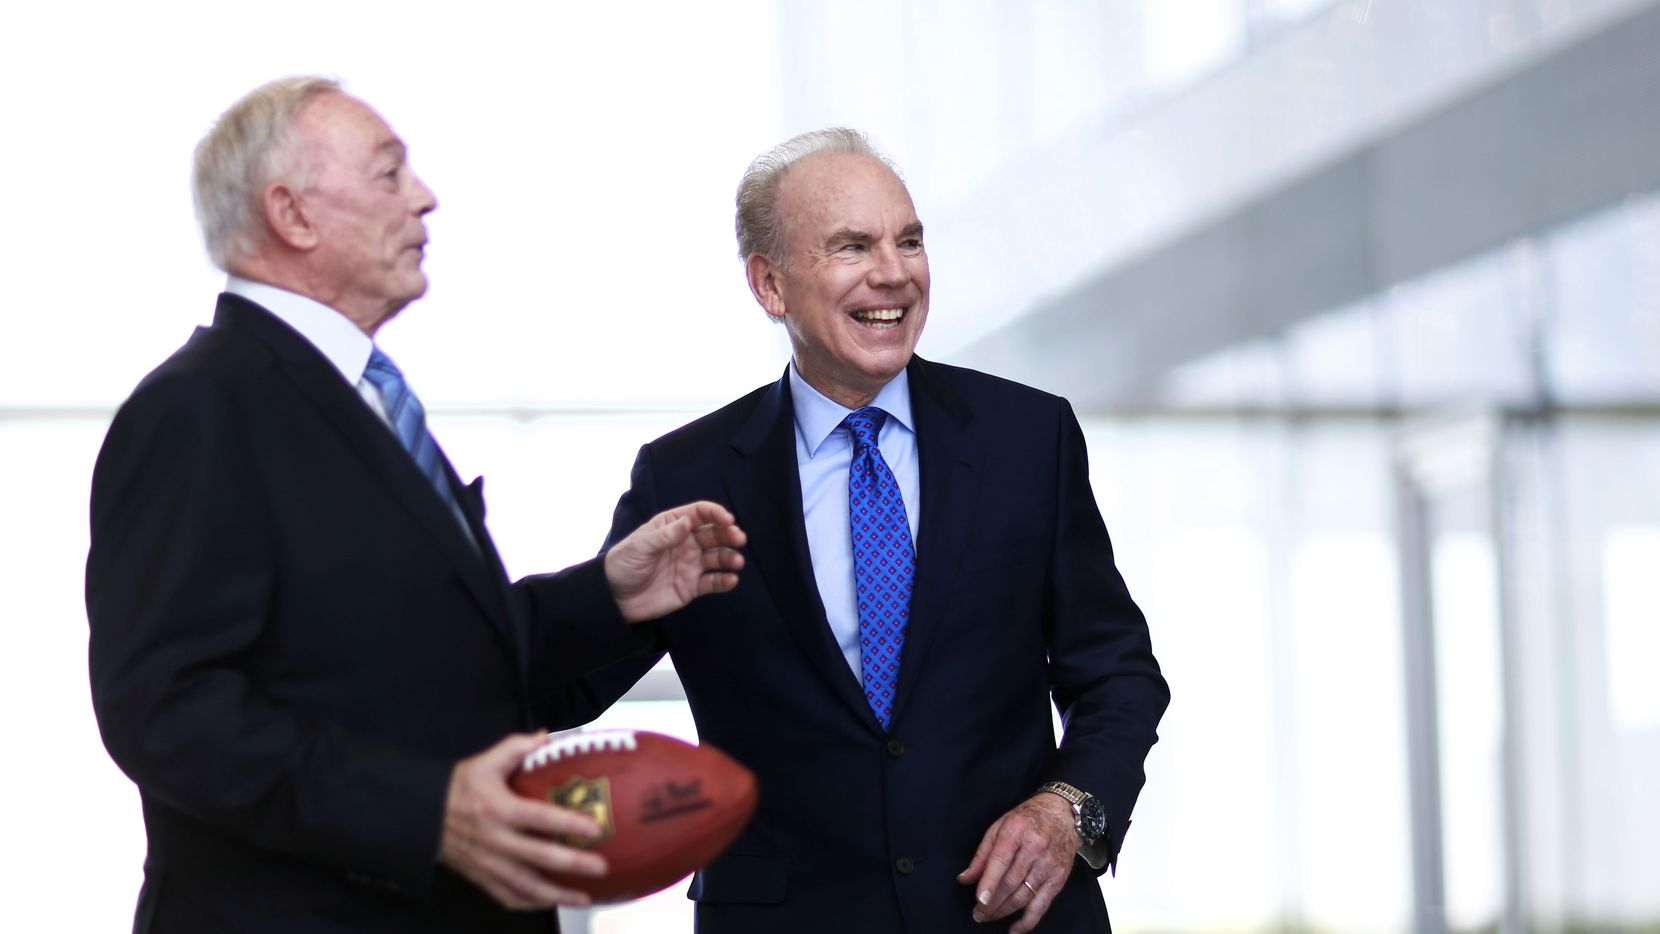 Former Dallas Cowboys quarterback Roger Staubach shares a laugh with Dallas Cowboys owner and general manager Jerry Jones at The Star in Frisco development.